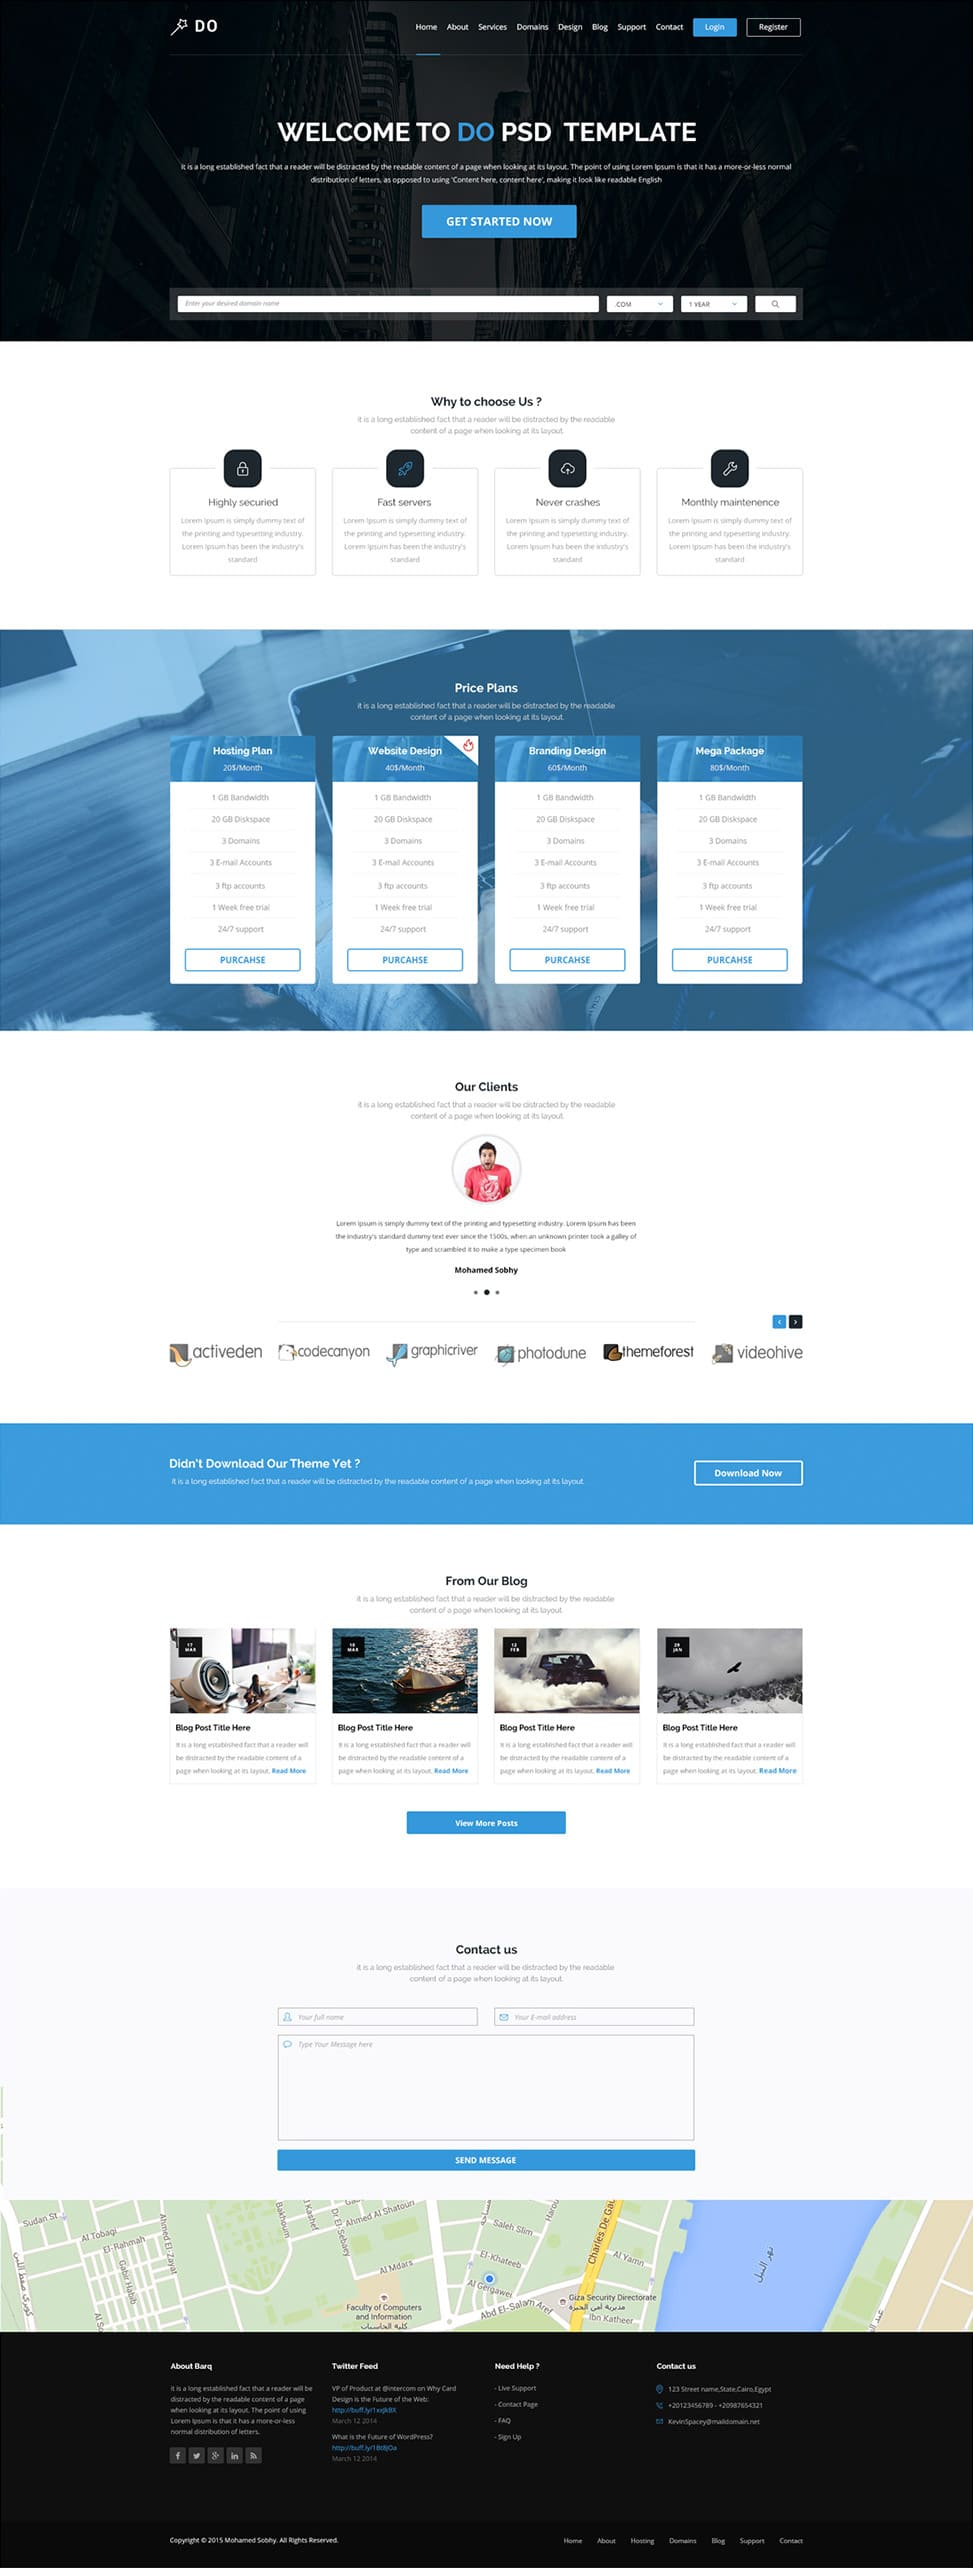 Free single page website templates psd css author do is an one page free template with clean and modern design fully layered easily editable psd files that are well organized in layers groups pronofoot35fo Choice Image